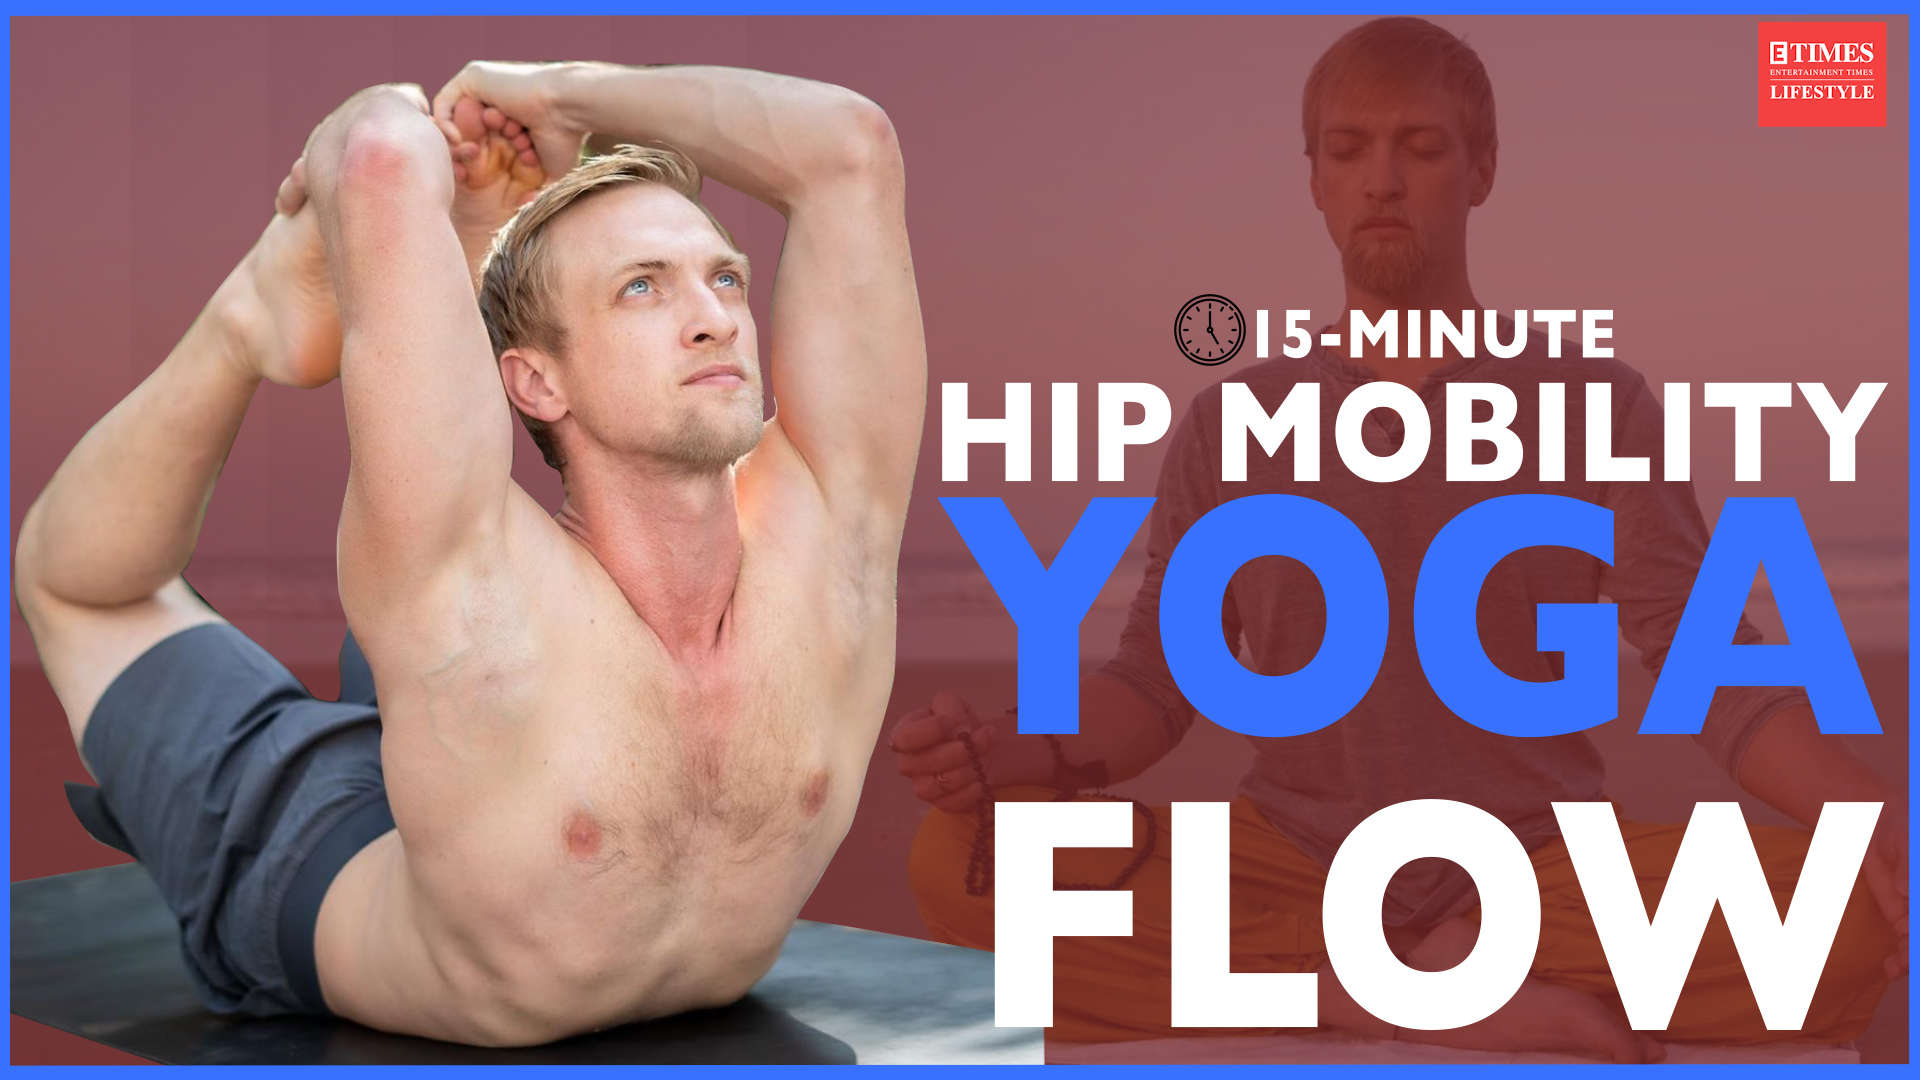 15-minute-hip-mobility-yoga-flow